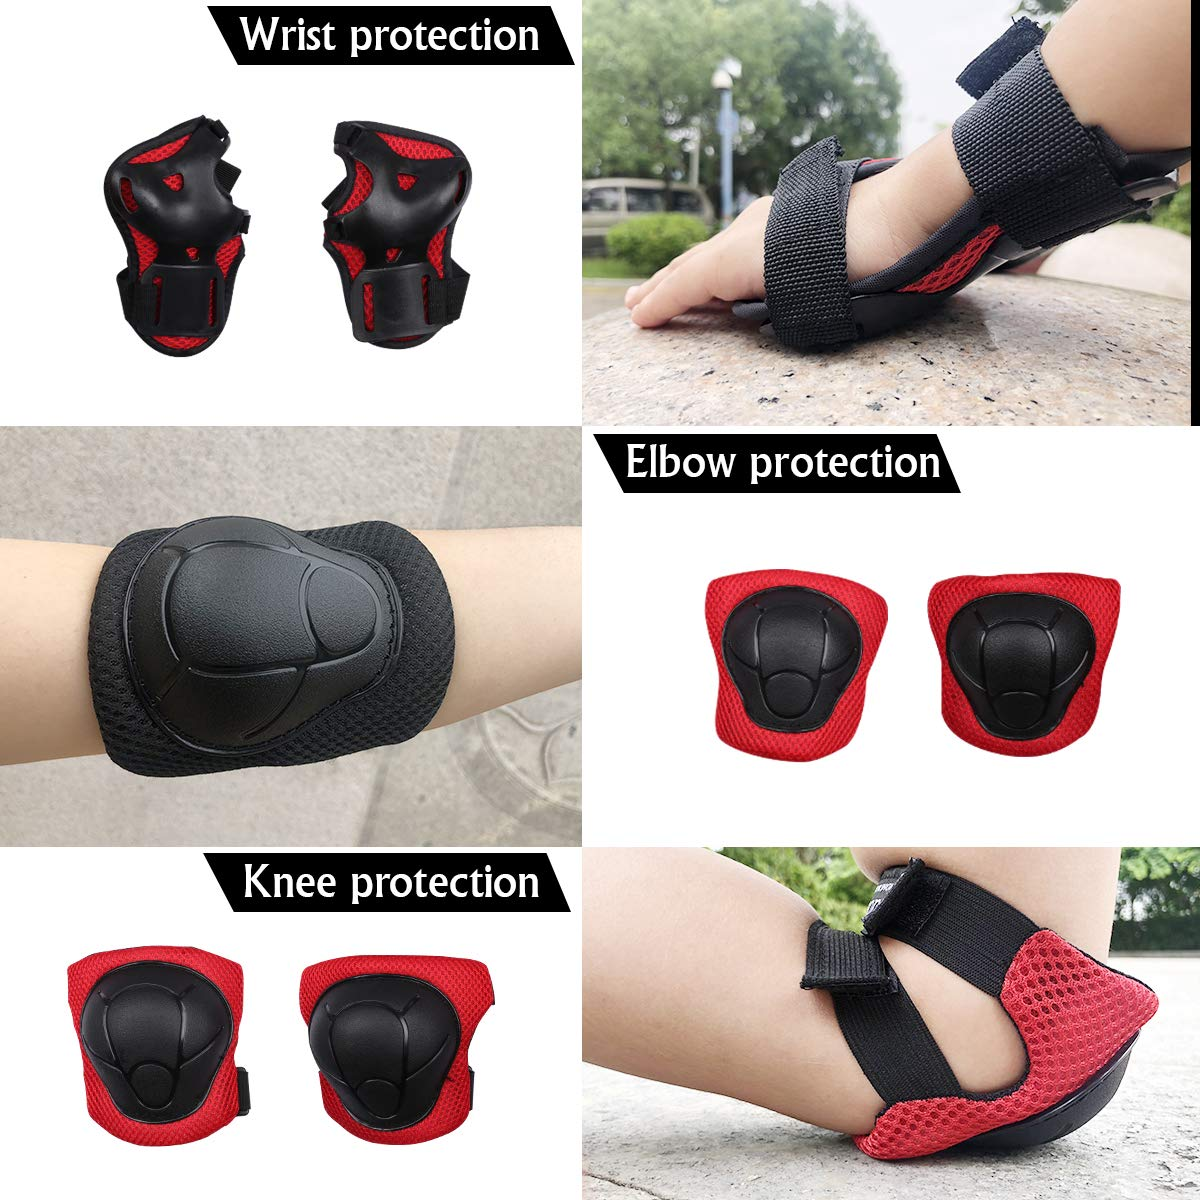 Bosoner Kids//Youth Knee Pad Elbow Pads Guards Protective Gear Set for Rollerblade Roller Skates Cycling BMX Bike Skateboard Inline Skatings Scooter Riding Sports